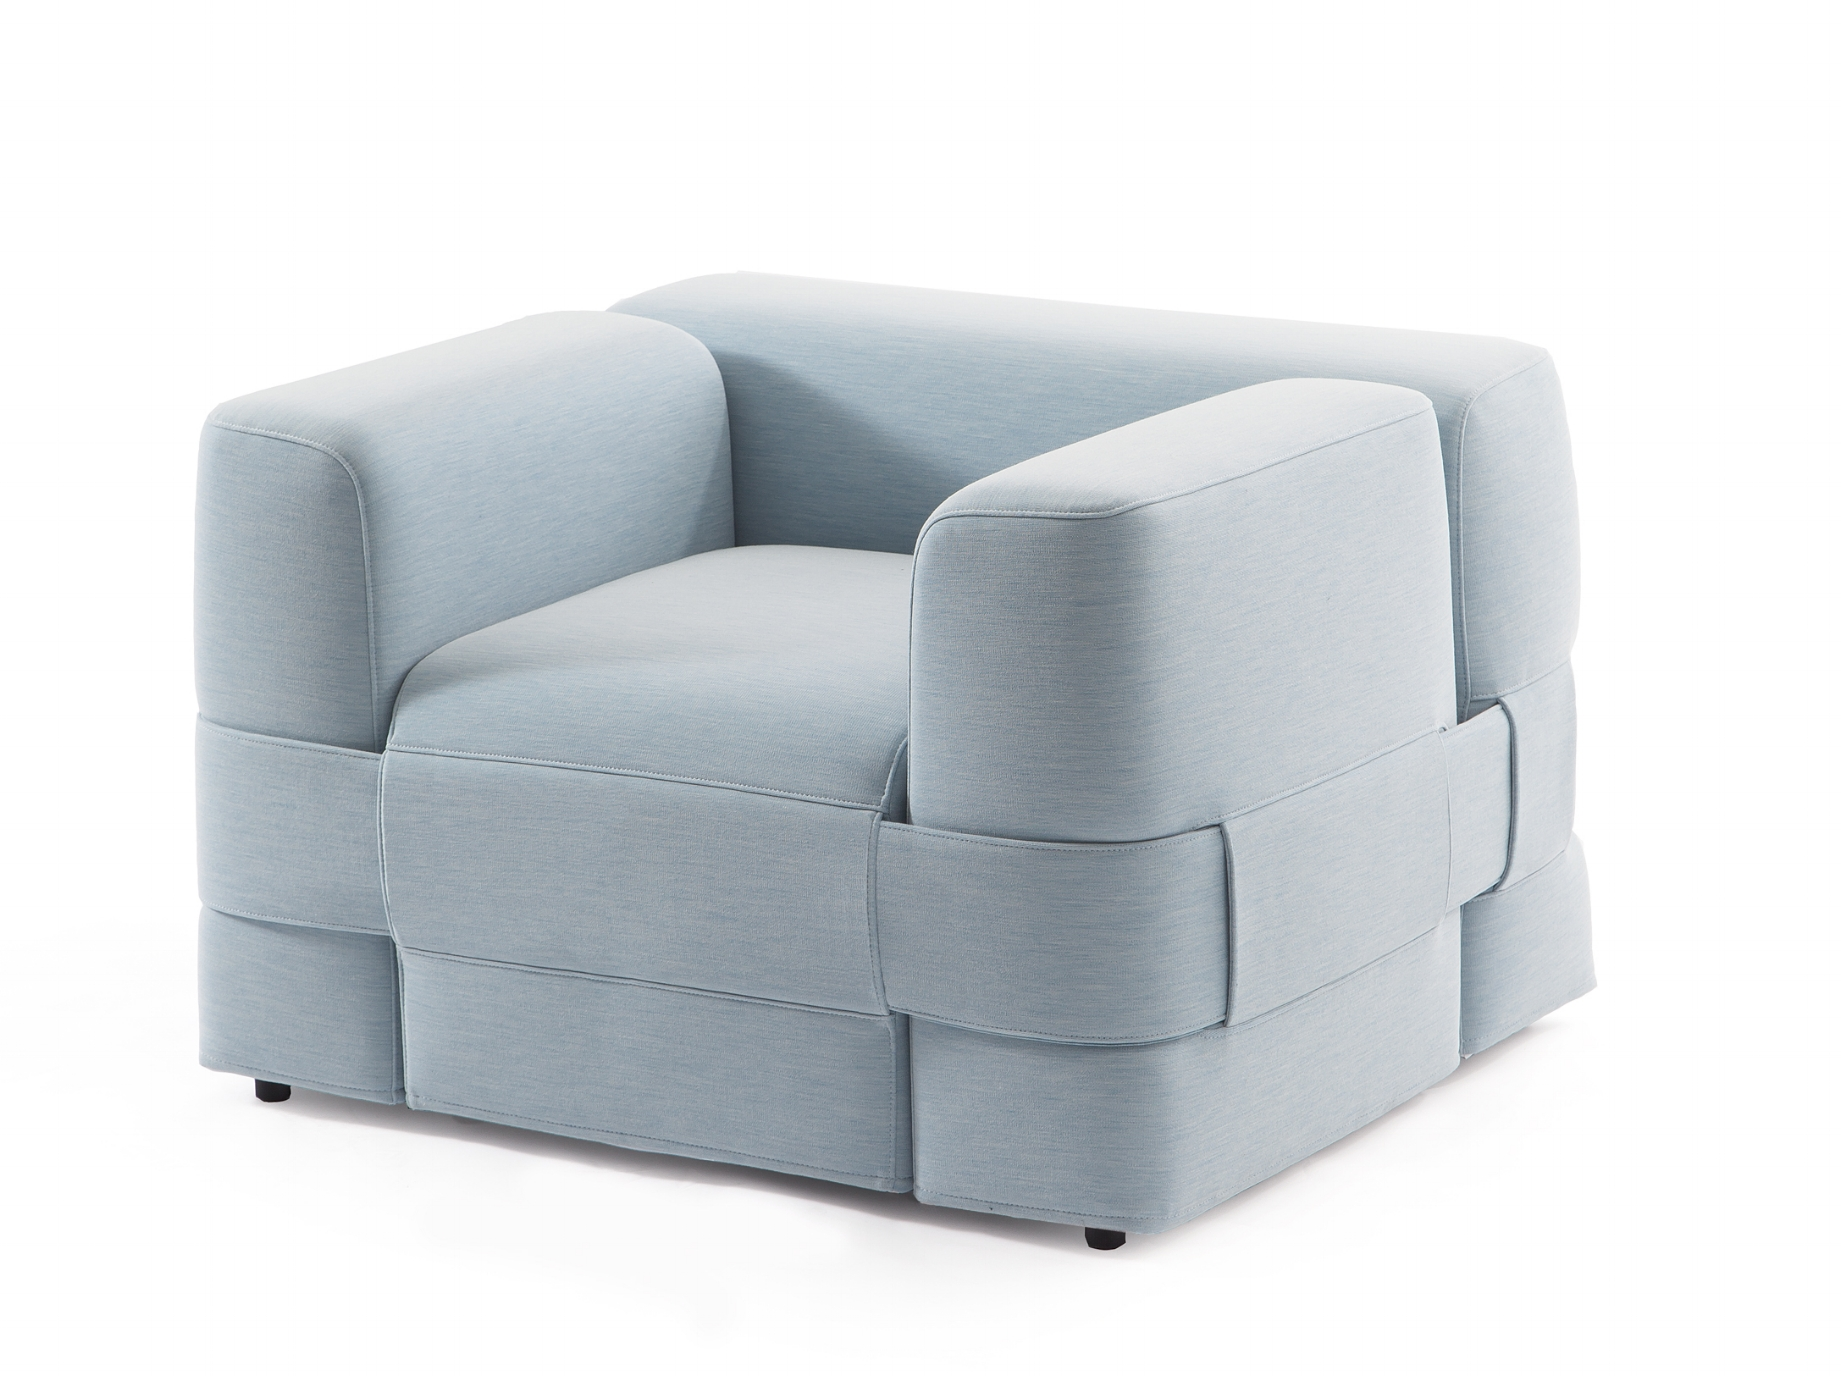 The MB Collection by Mario Bellini for the Cassina Contemporary collection.